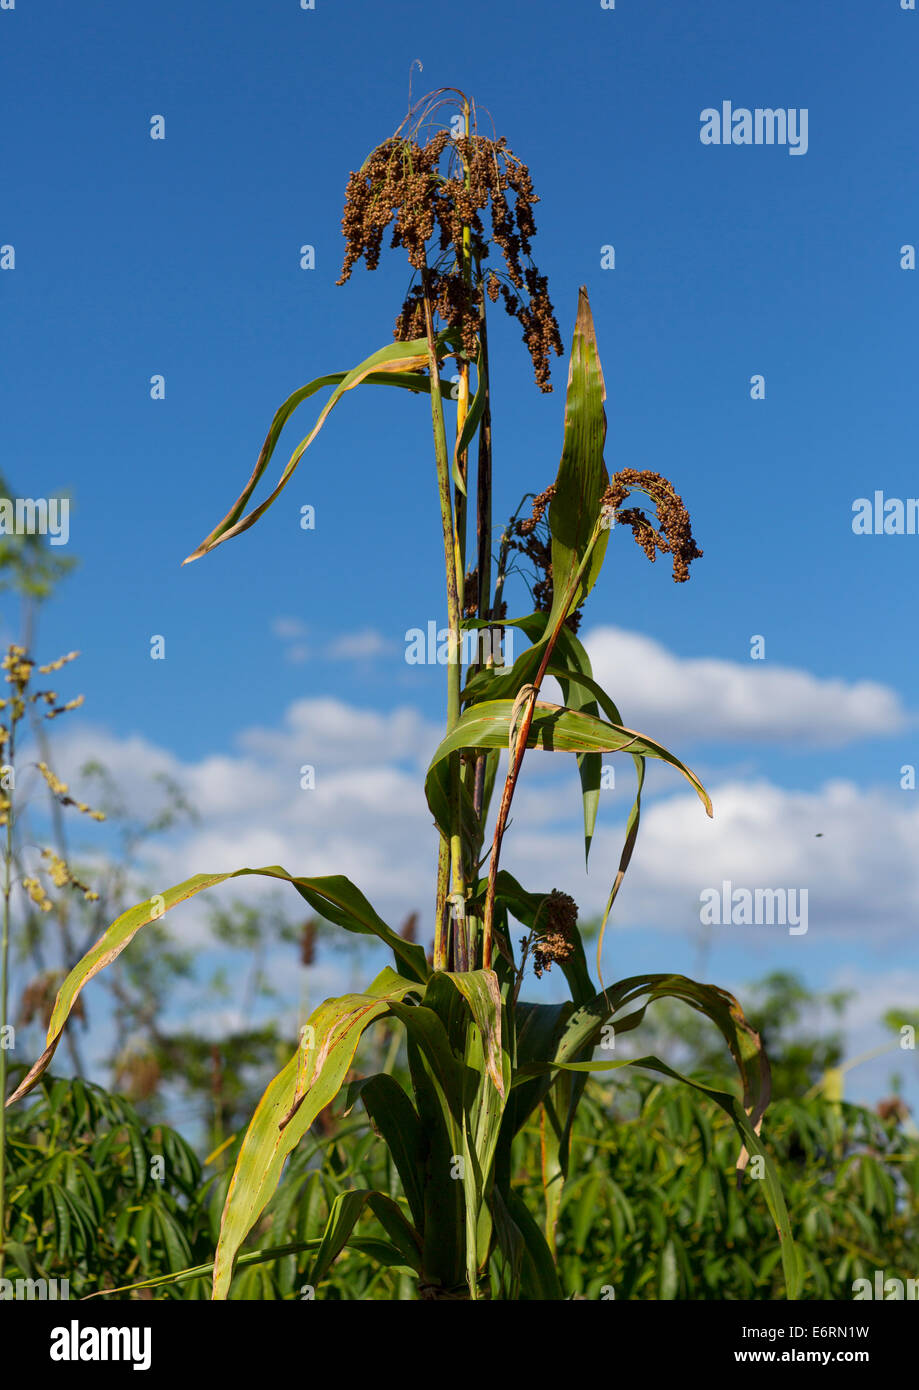 Sorghum Crop Ready For Harvest, Konso, Ethiopia - Stock Image